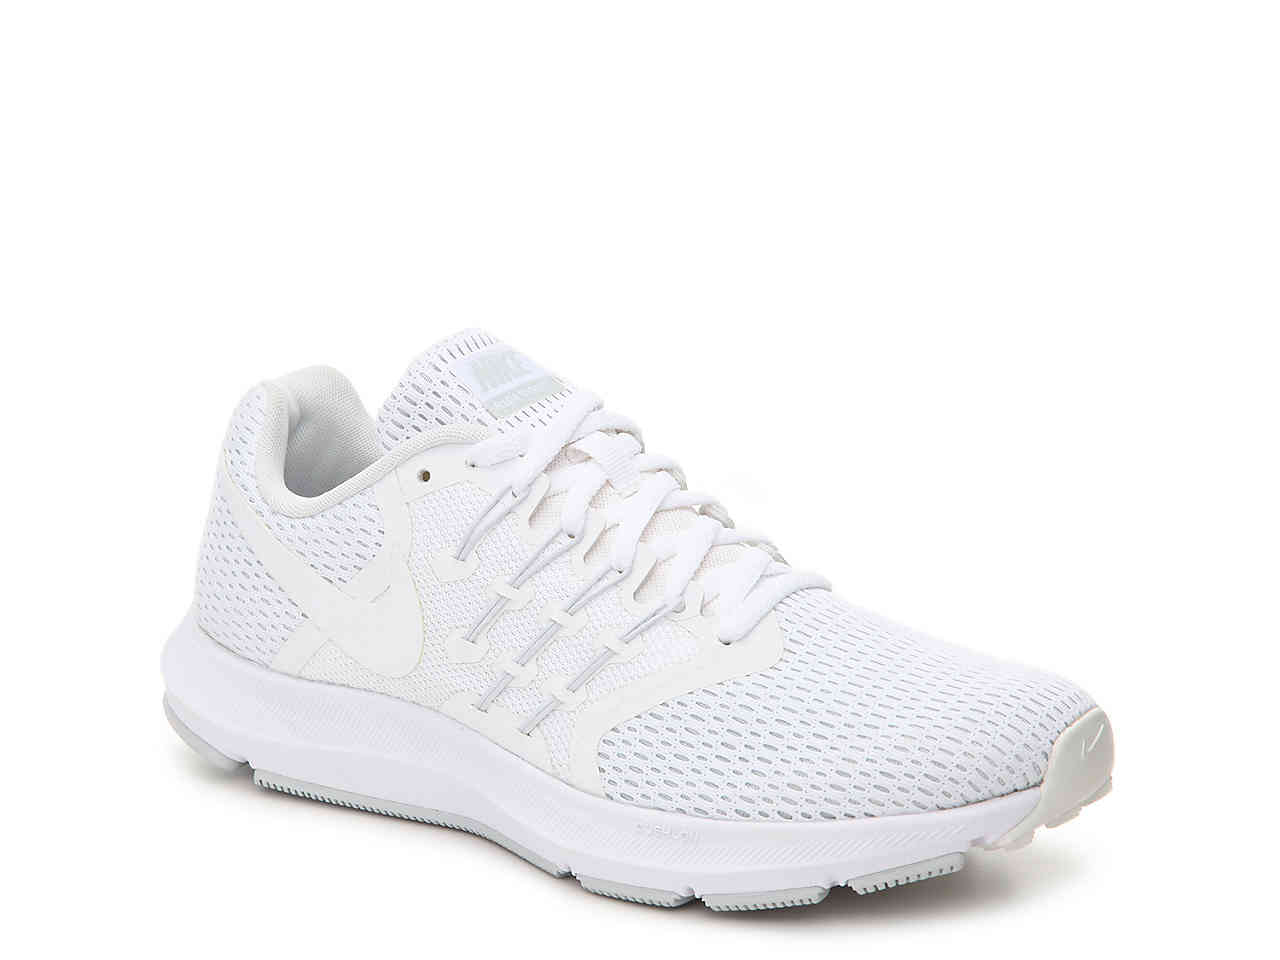 Womens Nike running shoes – Some Best Running Shoes in the Market